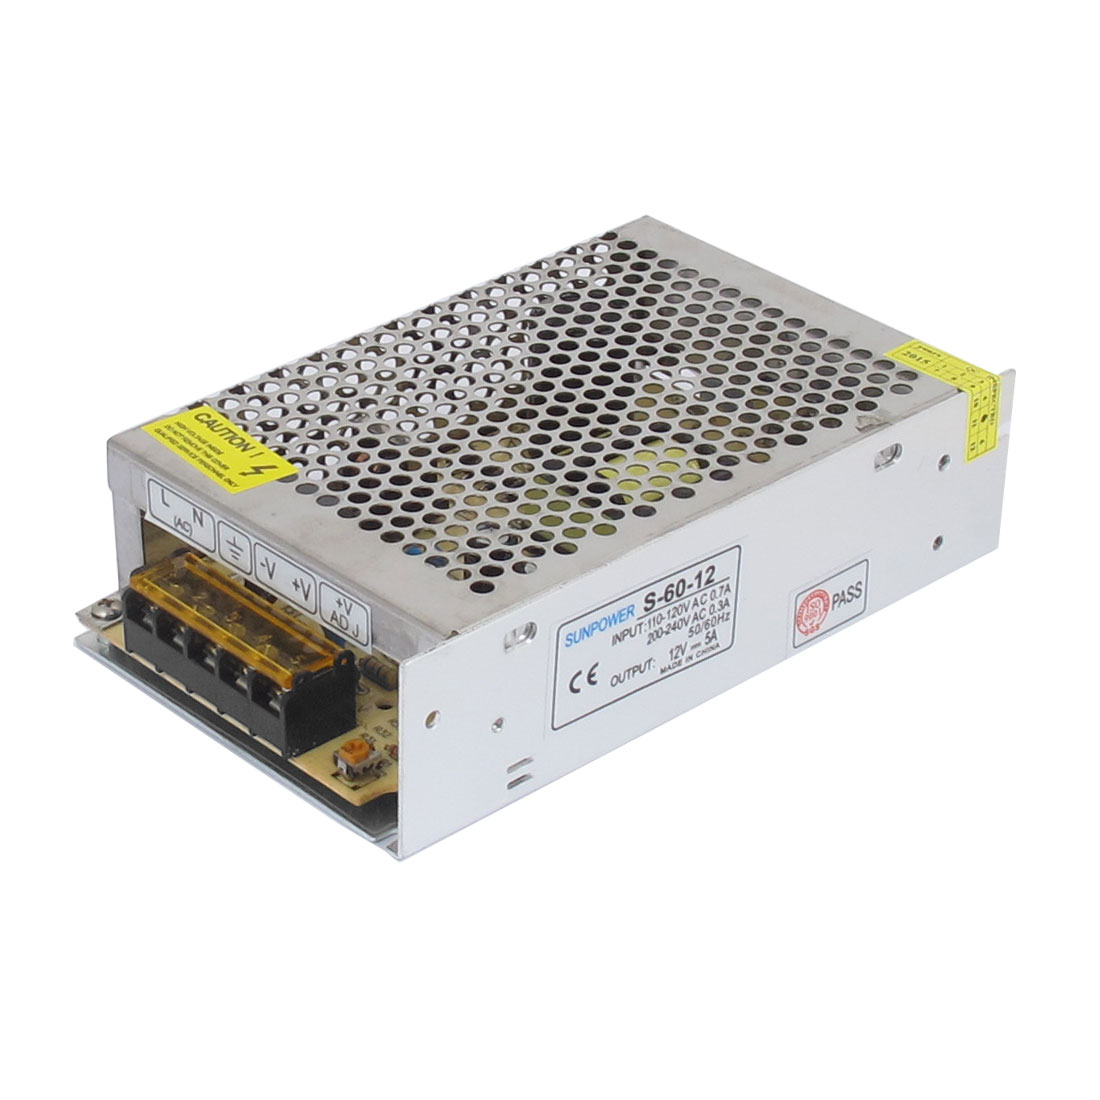 S-60-12 DC 12V 5A LED Strip Light Lighting Display Switching Power Supply Adapter Convertor Driver